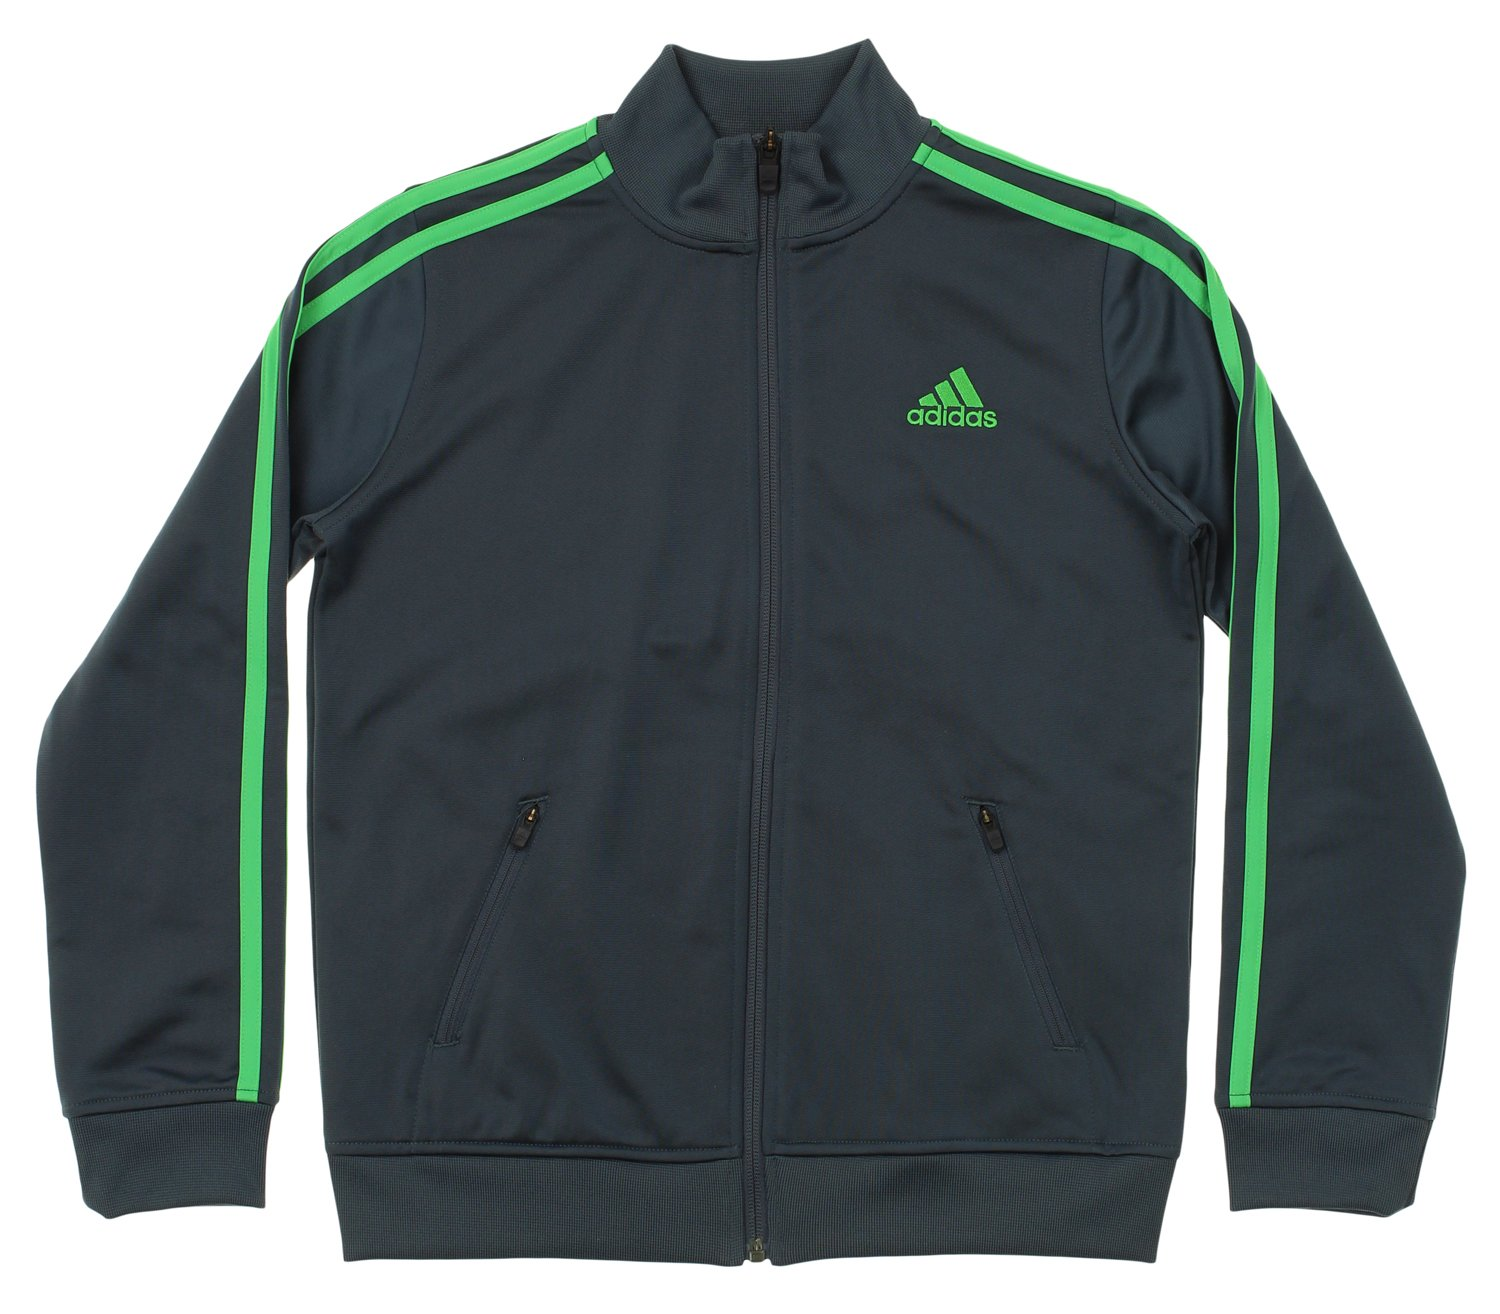 adidas Youth Fleece Lined Track Jacket, Grey Lime